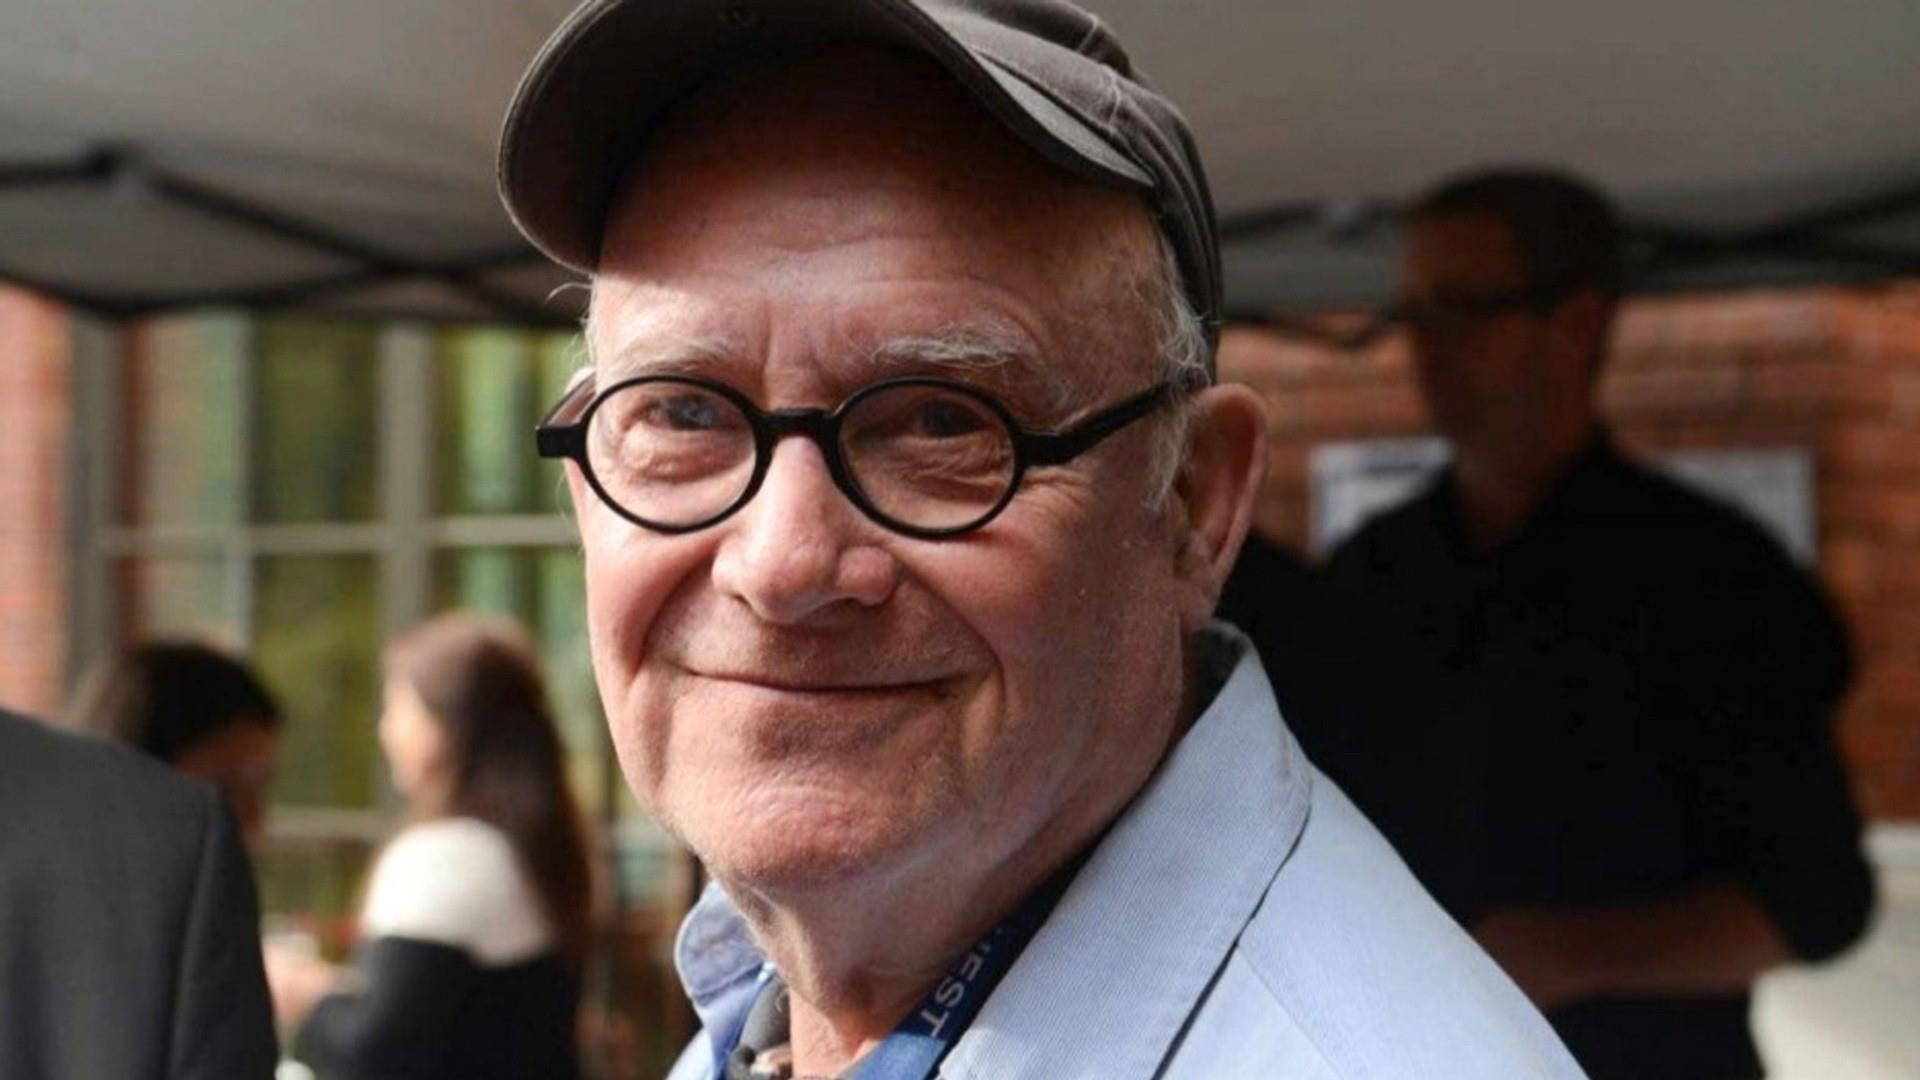 Buck Henry, screenwriter of 'The Graduate' and frequent 'SNL' host, dies at 89